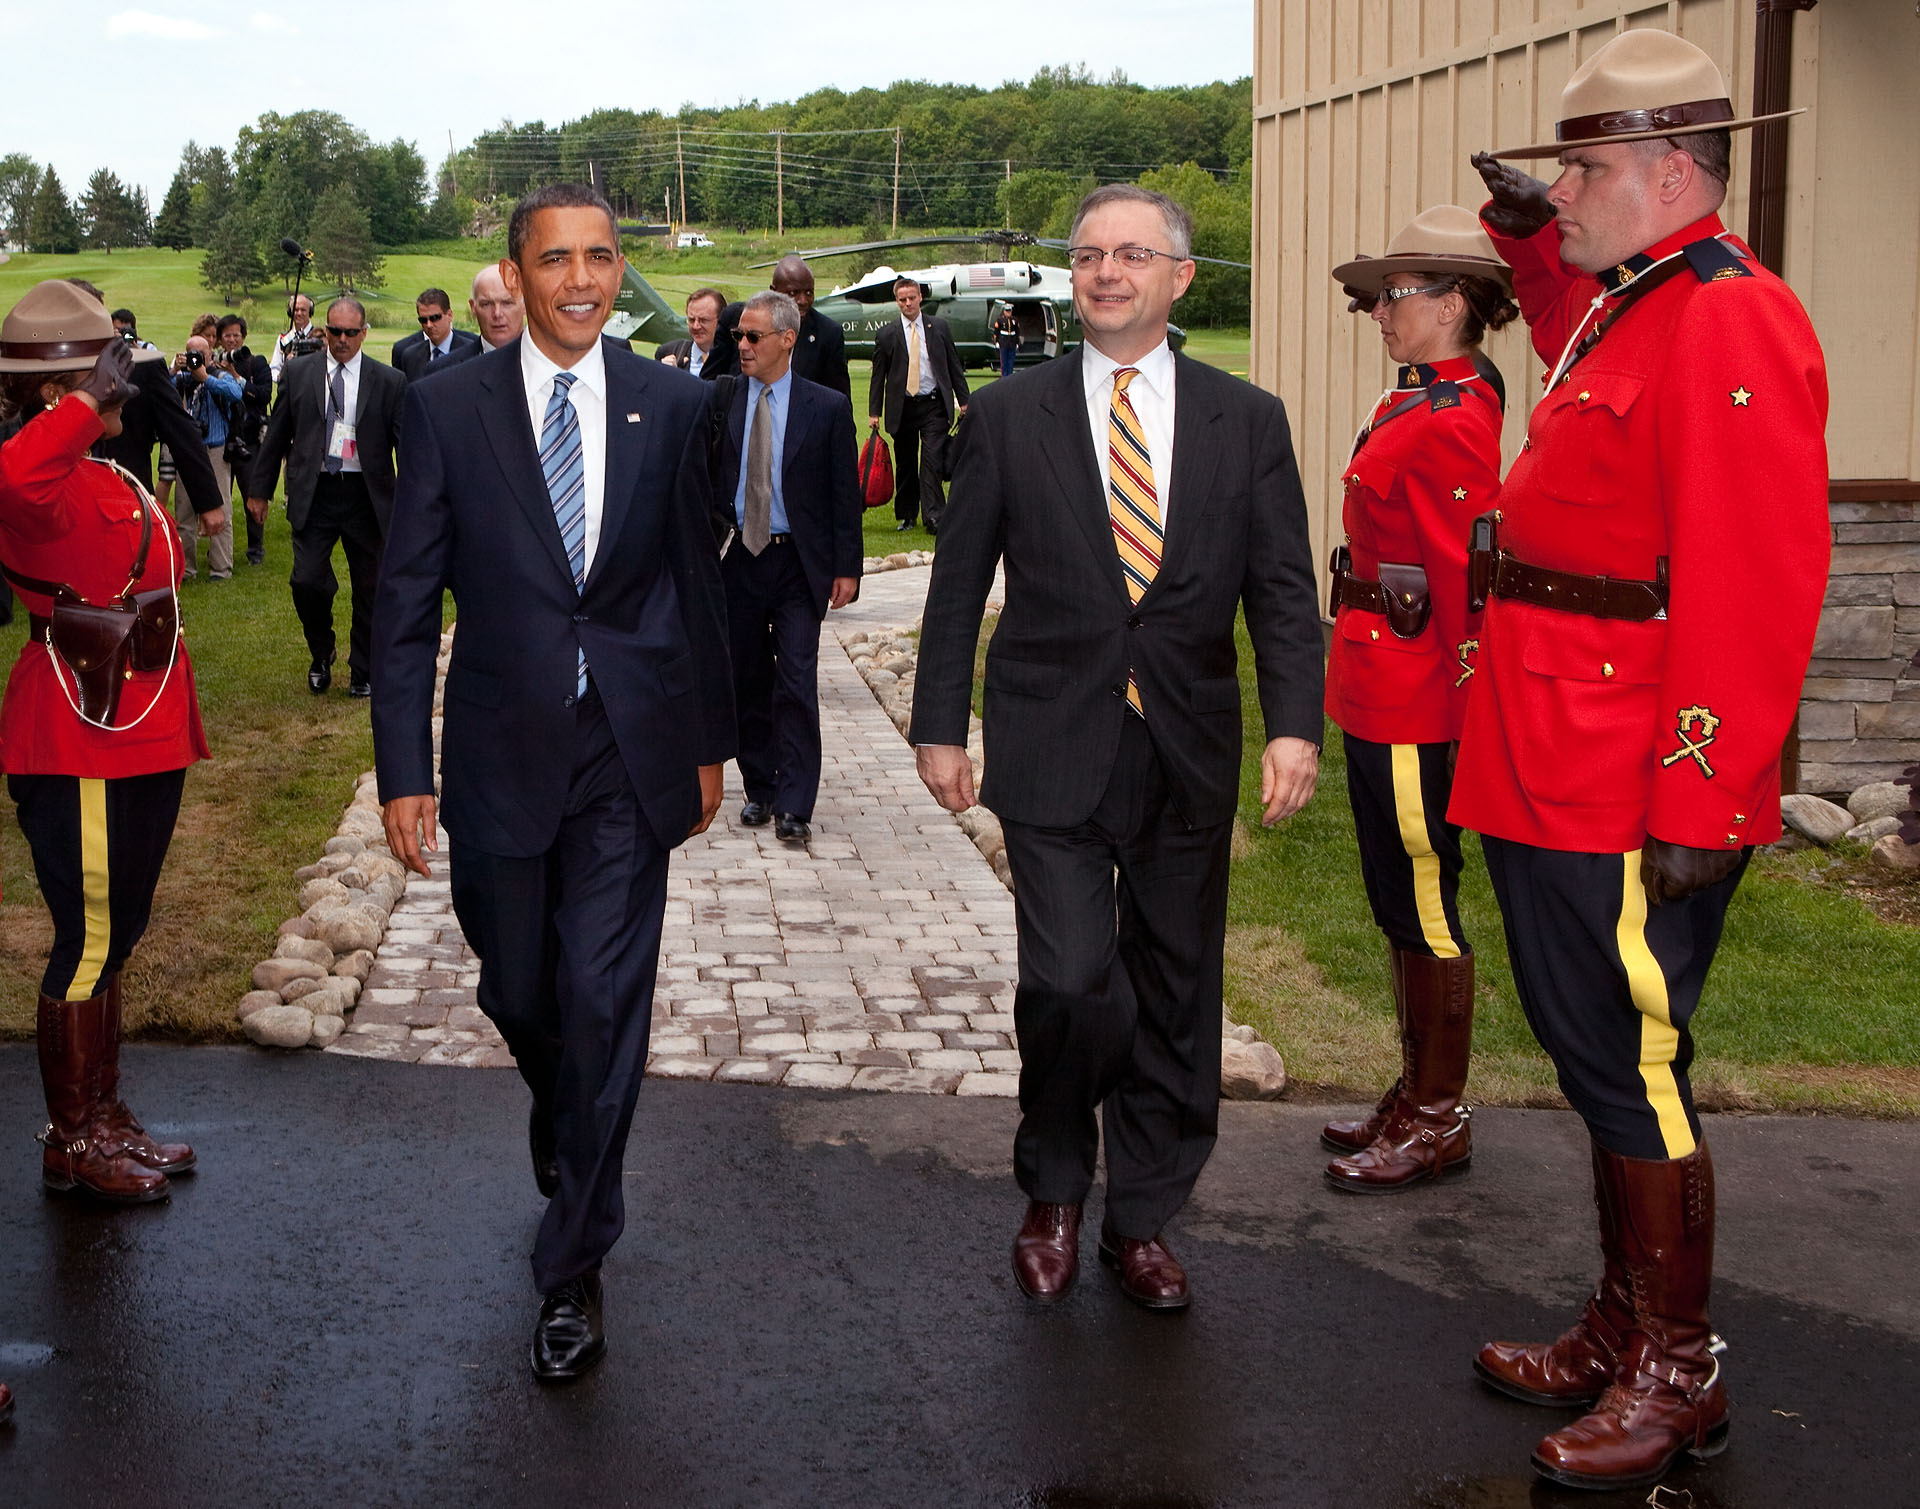 President Barack Obama is Saluted by a Royal Canadian Mounted Police Officers at G8 Summit in Canada